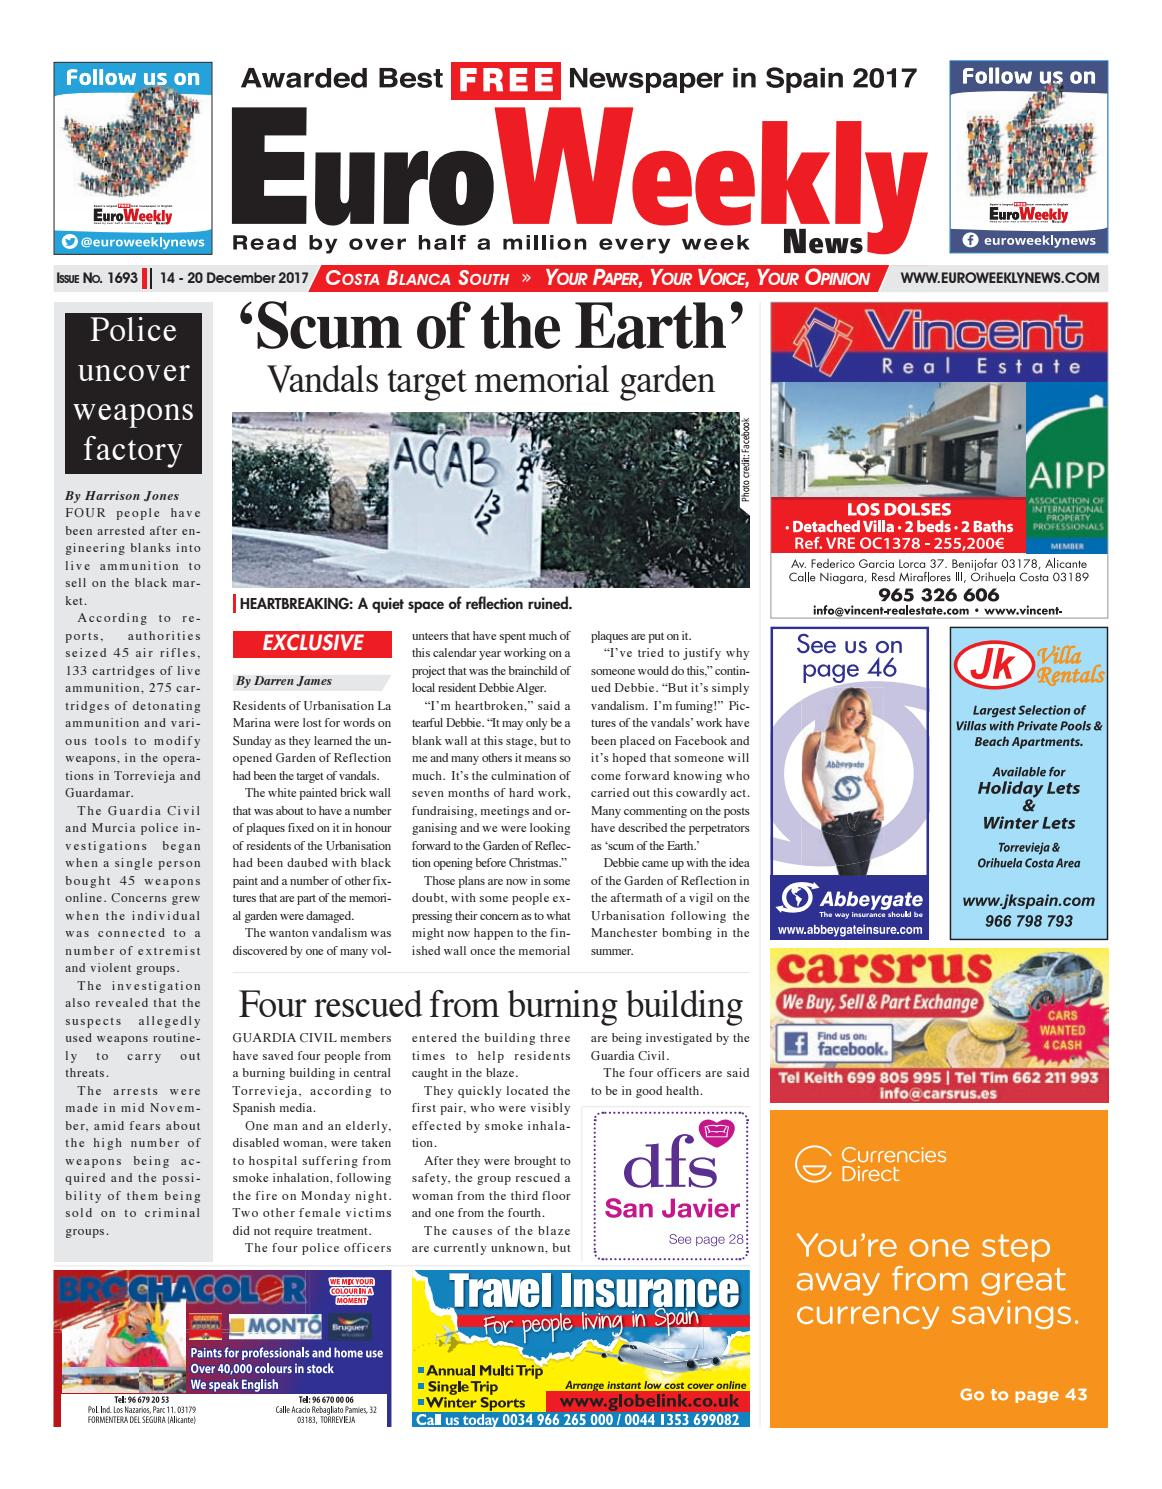 Euro weekly news costa blanca south 14 20 december 2017 issue euro weekly news costa blanca south 14 20 december 2017 issue 1693 by euro weekly news media sa issuu fandeluxe Image collections